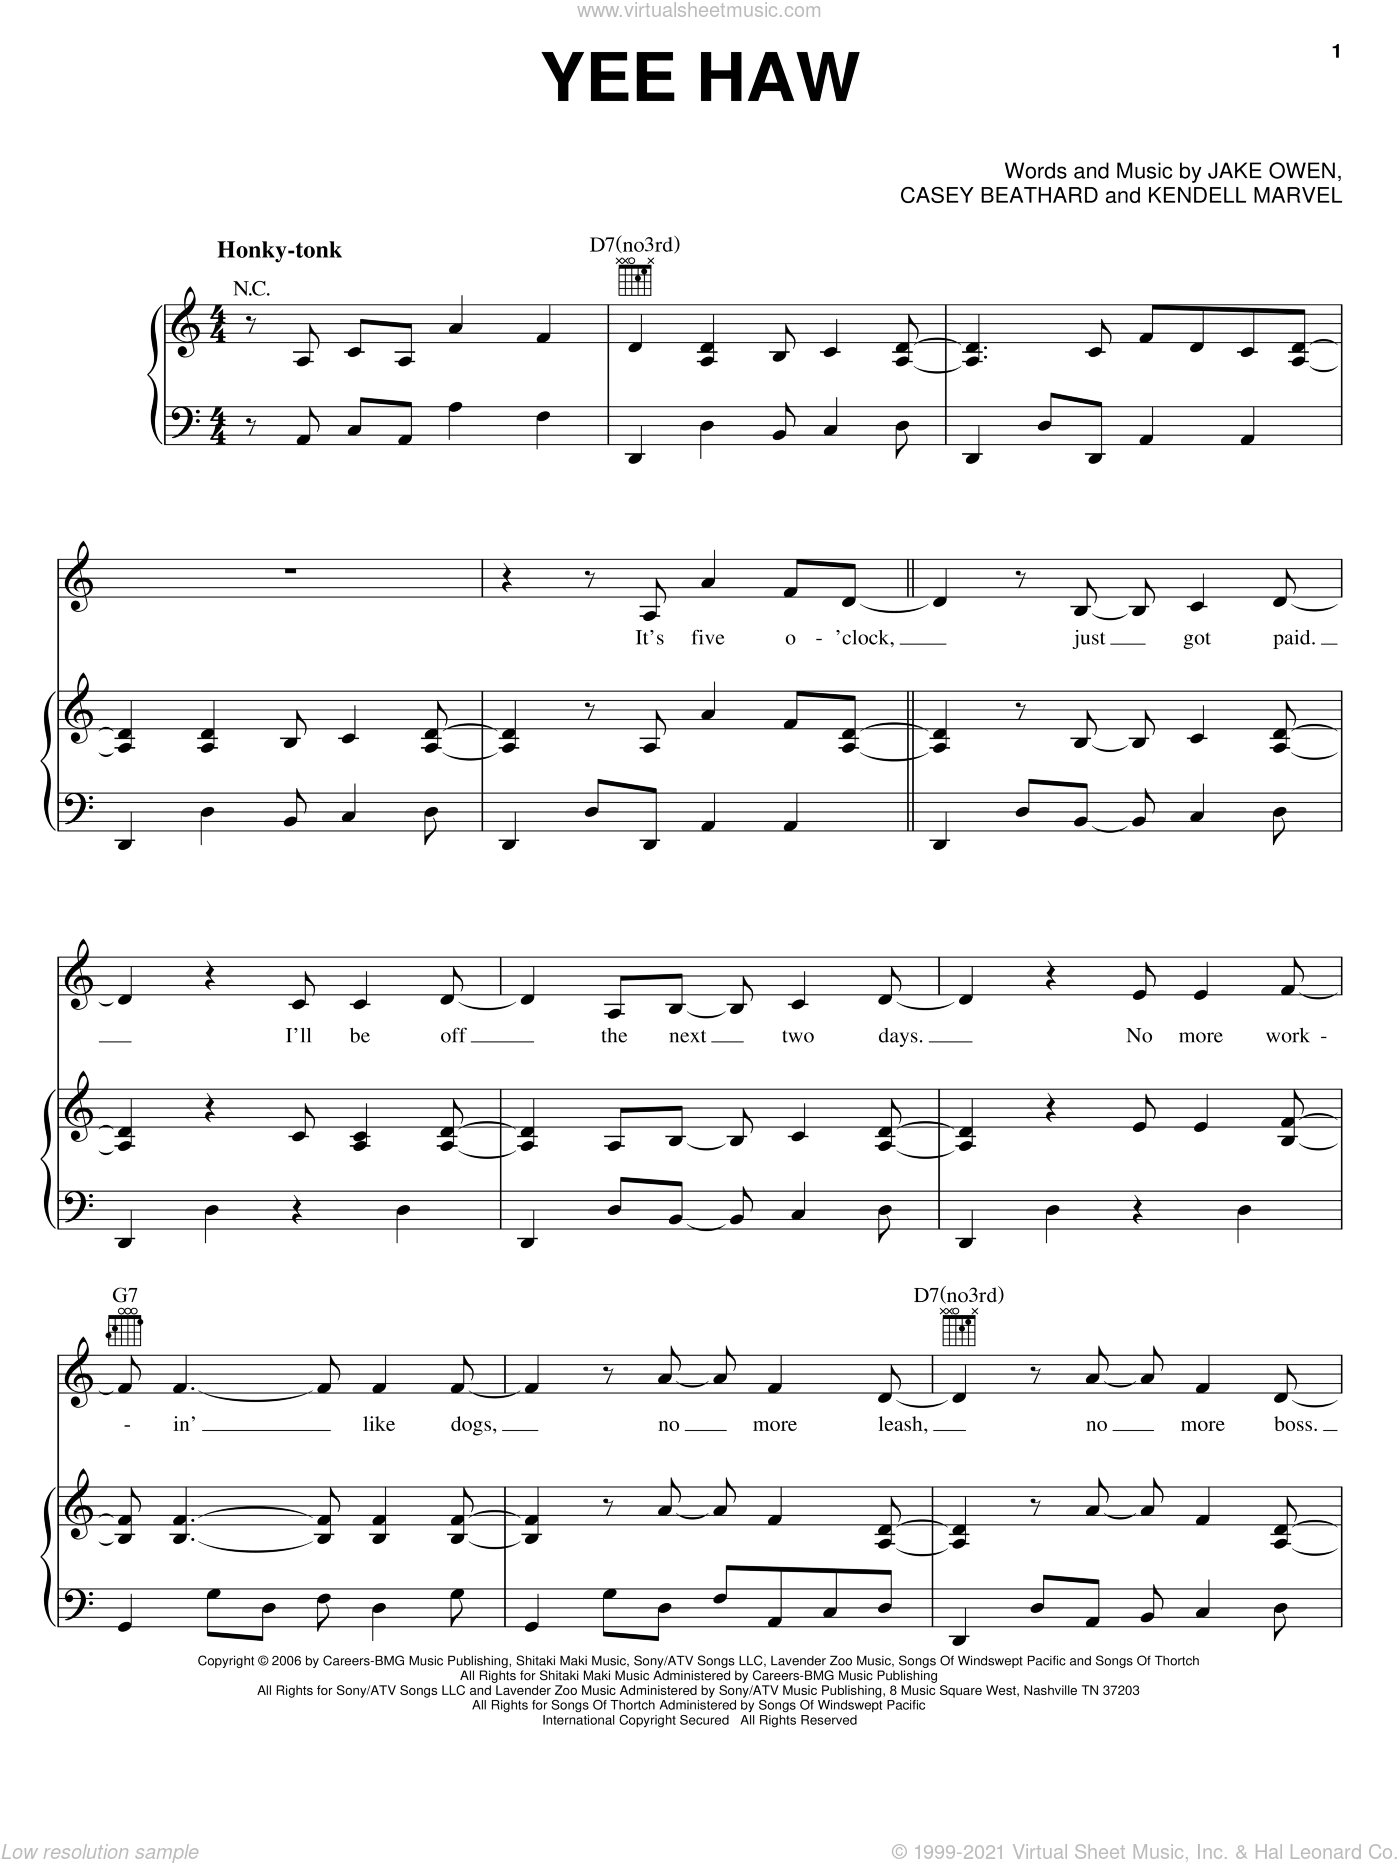 Yee Haw sheet music for voice, piano or guitar by Jake Owen, Casey Beathard and Kendell Marvell, intermediate skill level